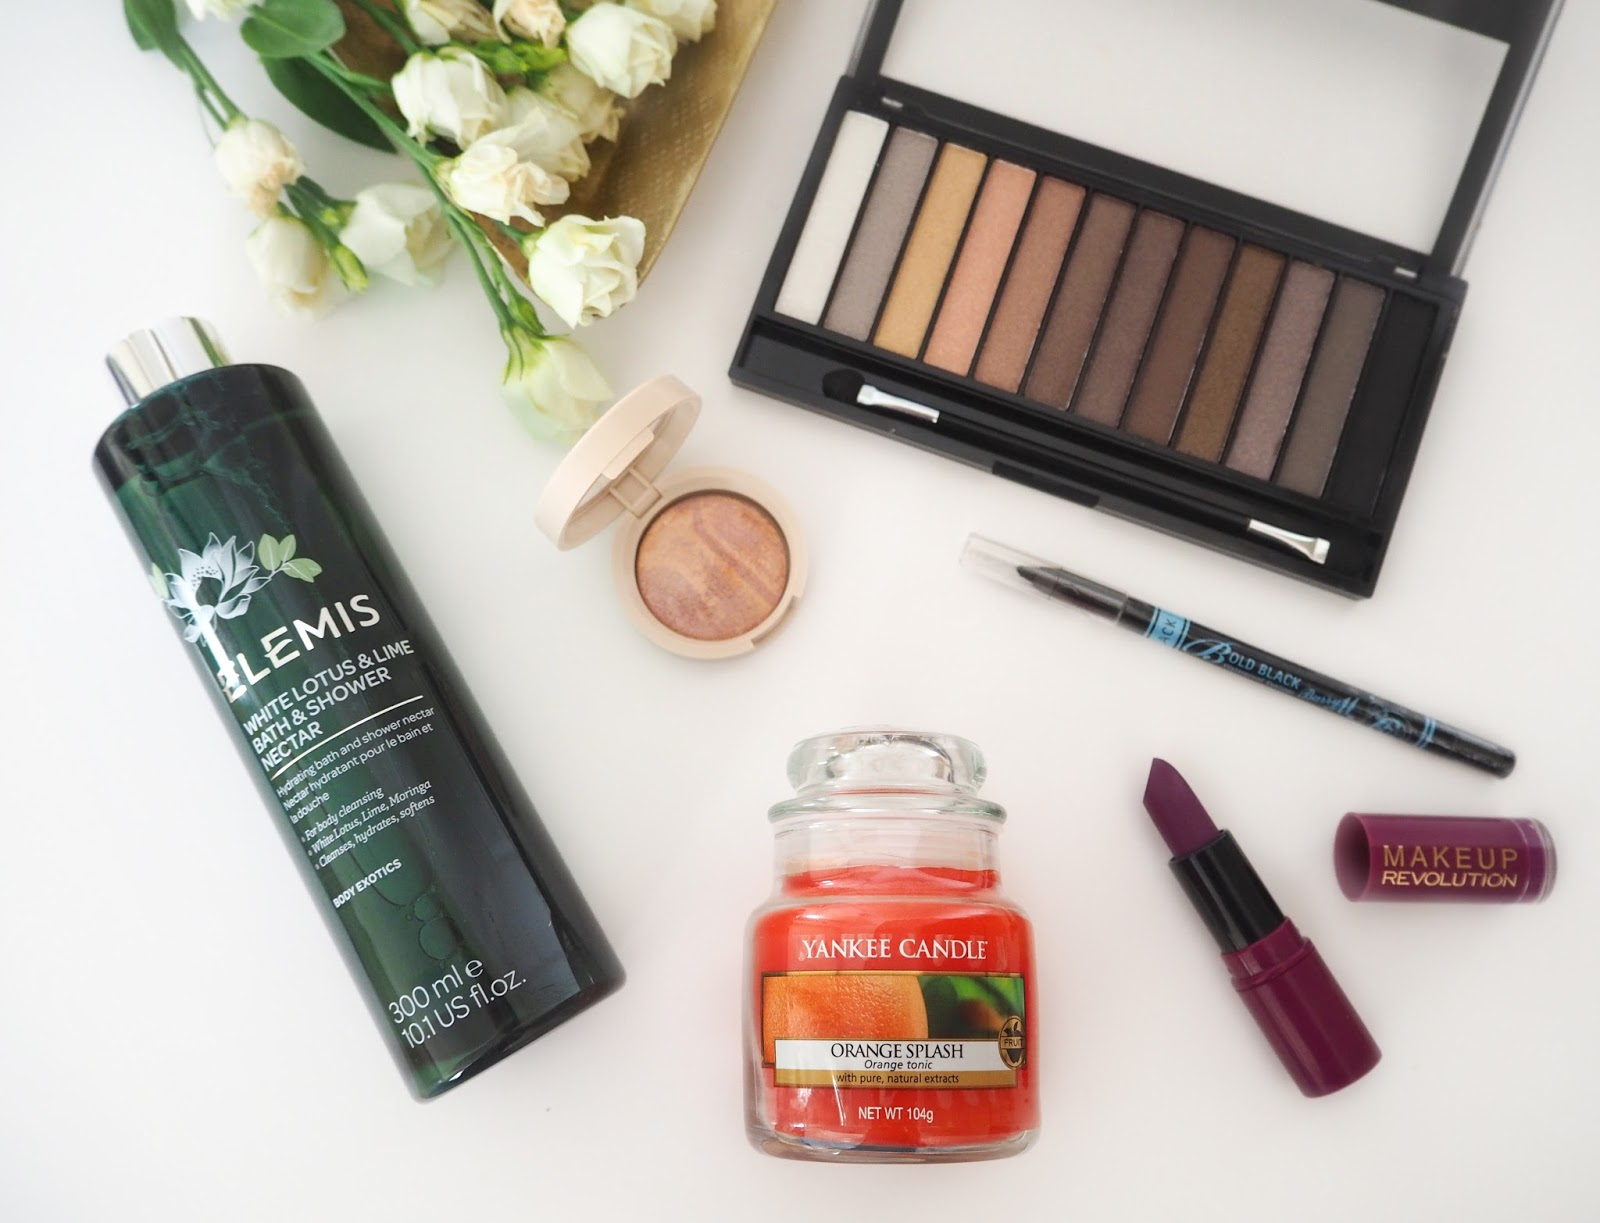 Spring Giveaway Bundle, Katie Kirk Loves, Competition, Prize, Sweepstakes, Giveaway, Beauty, Elemis, Make Up Revolution, Laura Geller Make Up, Yankee Candles, Candles, Barry M